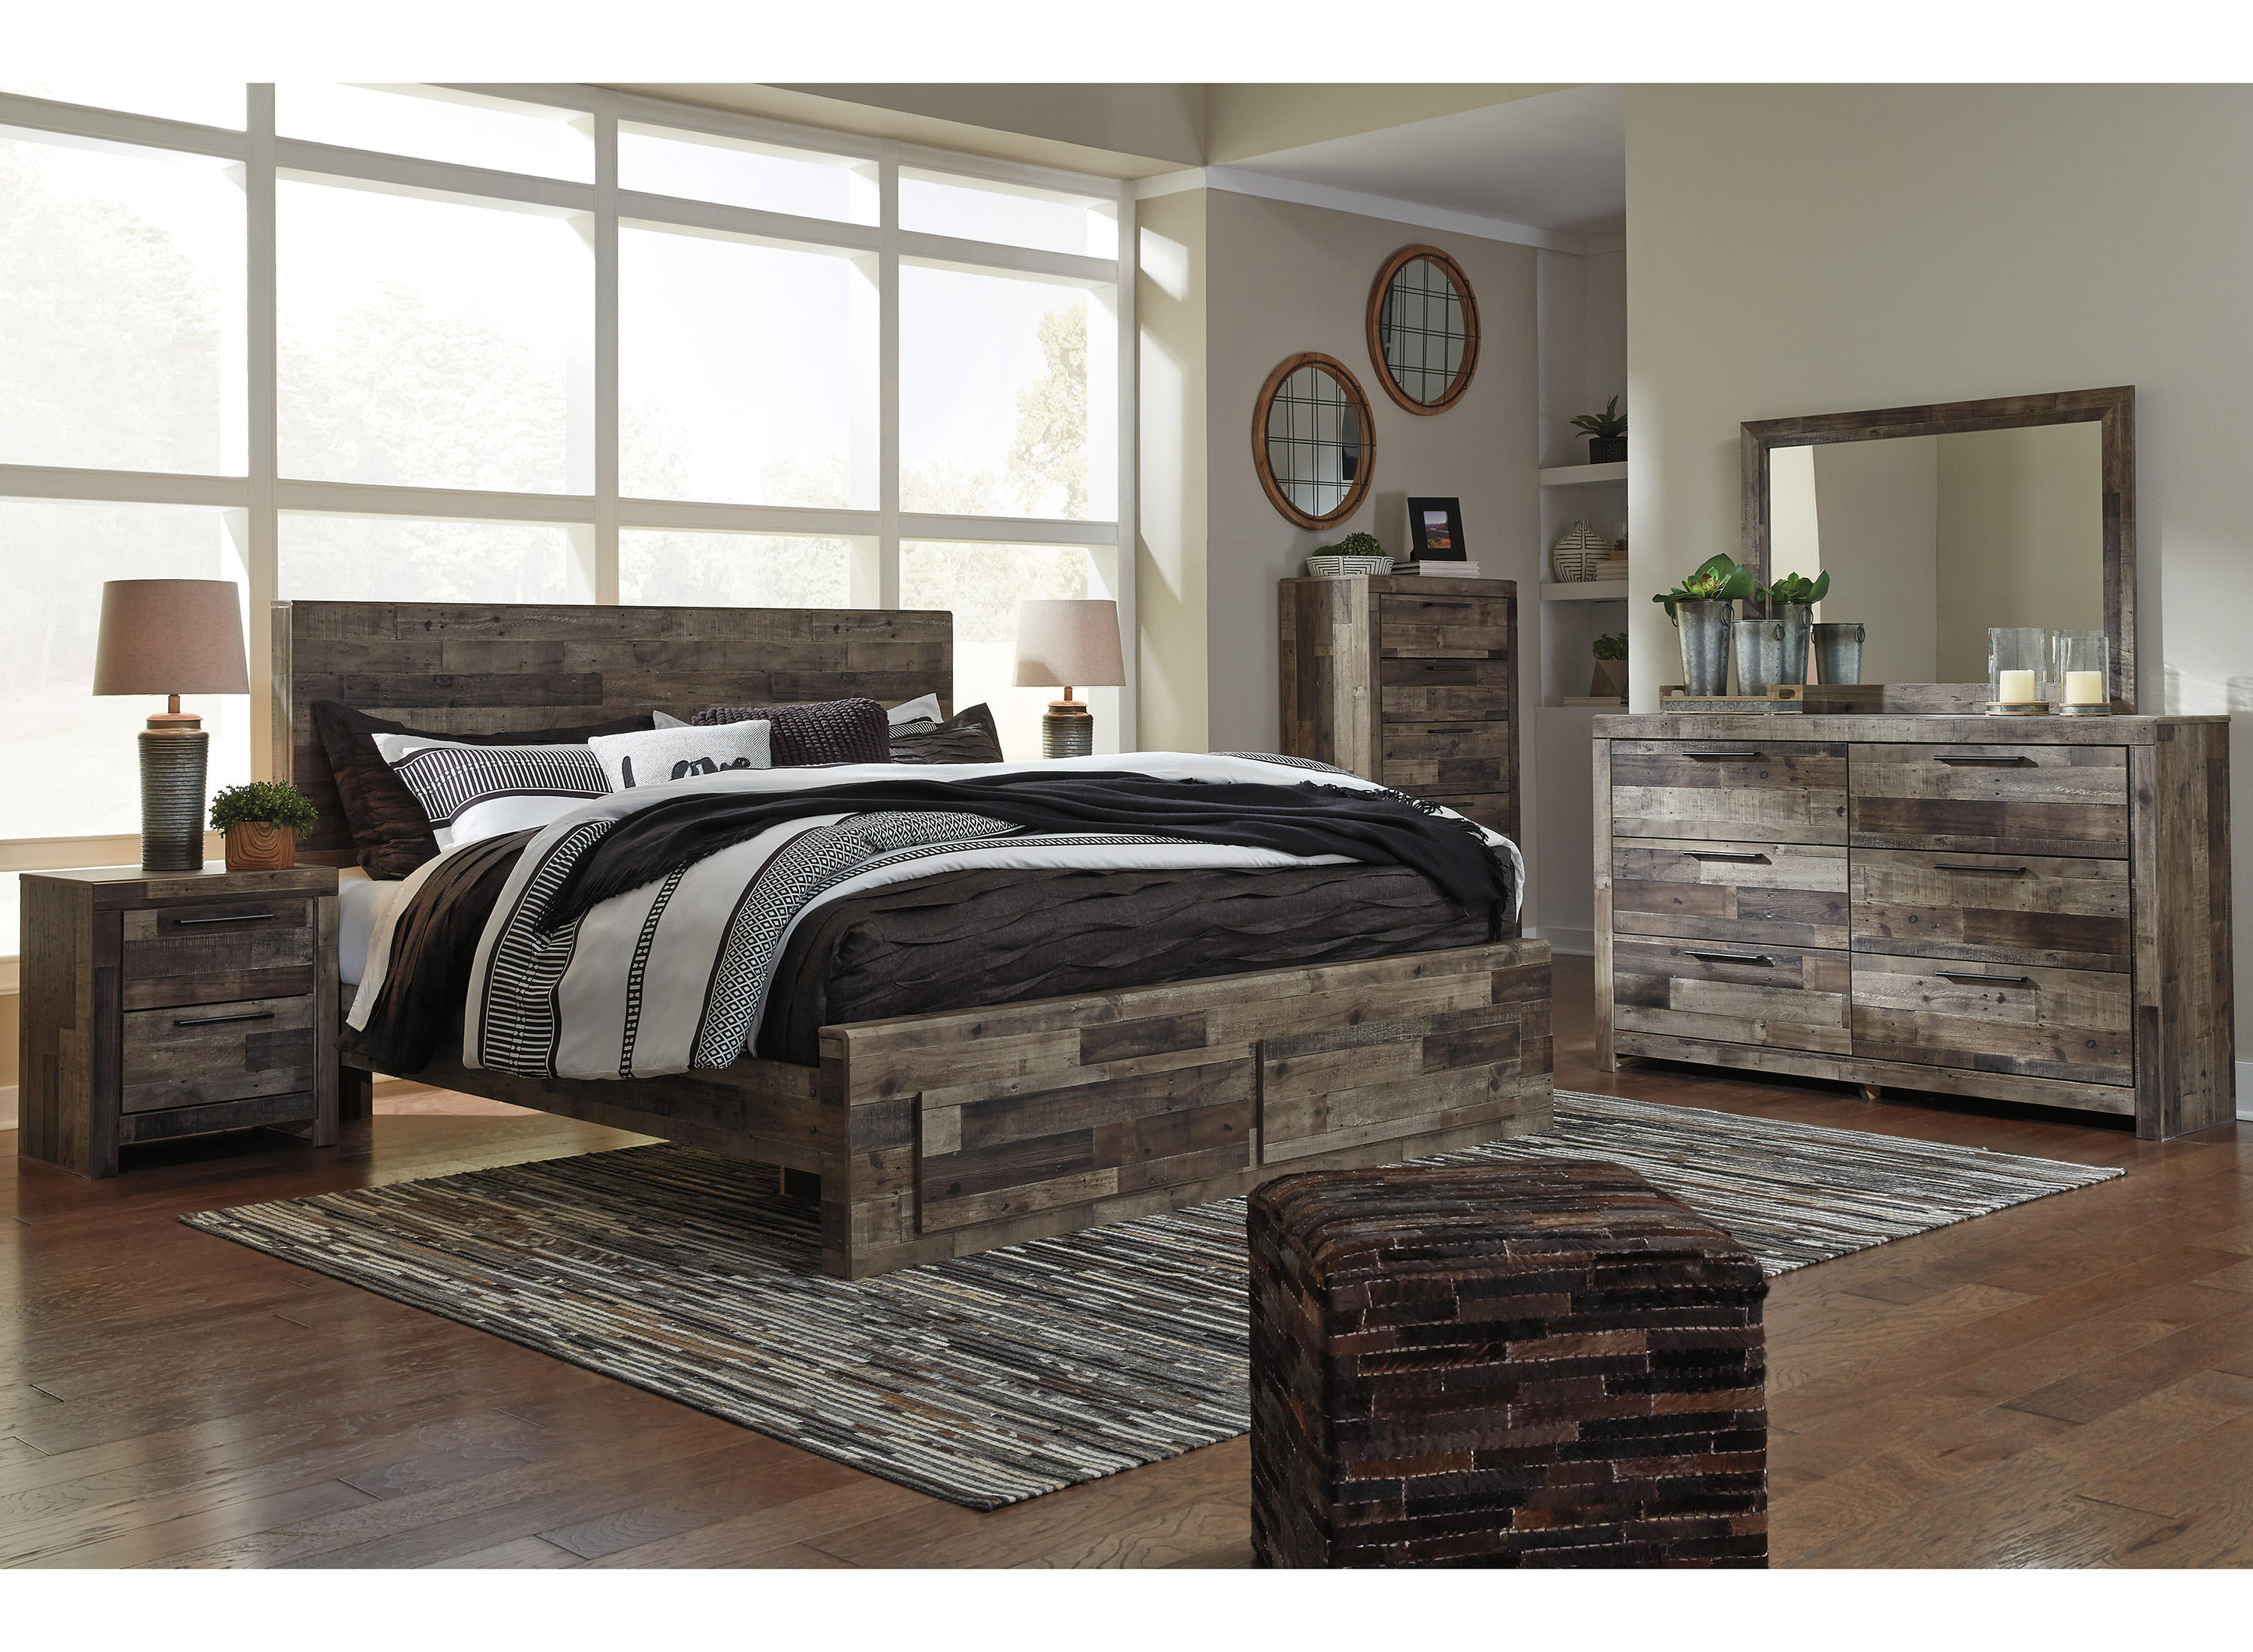 Raymour & Flanigan Furniture and Mattress Outlet image 7